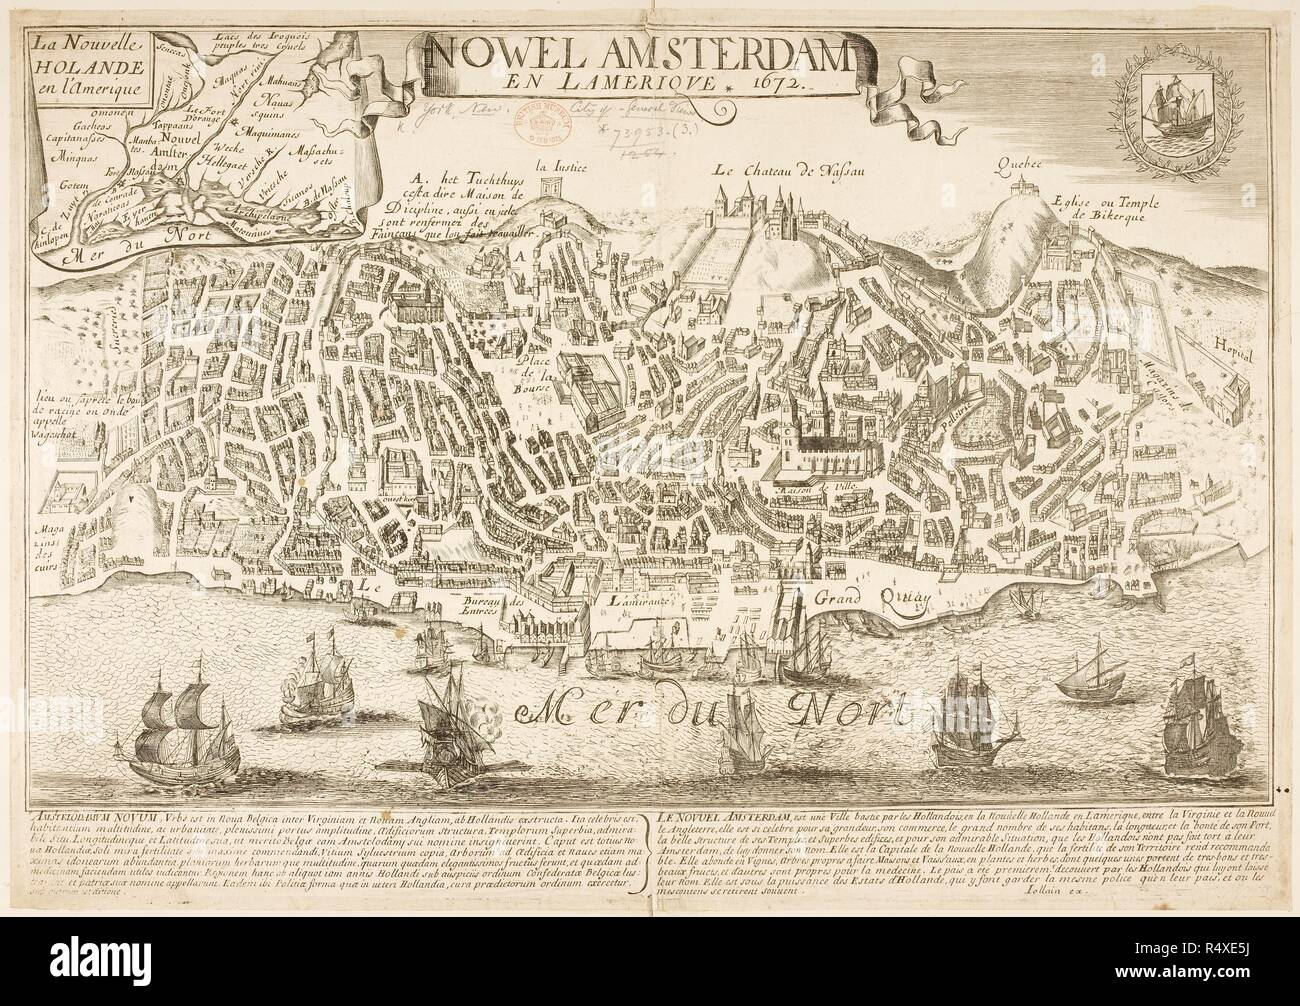 Map of New Amsterdam (New York) in 1672 and then in 1729